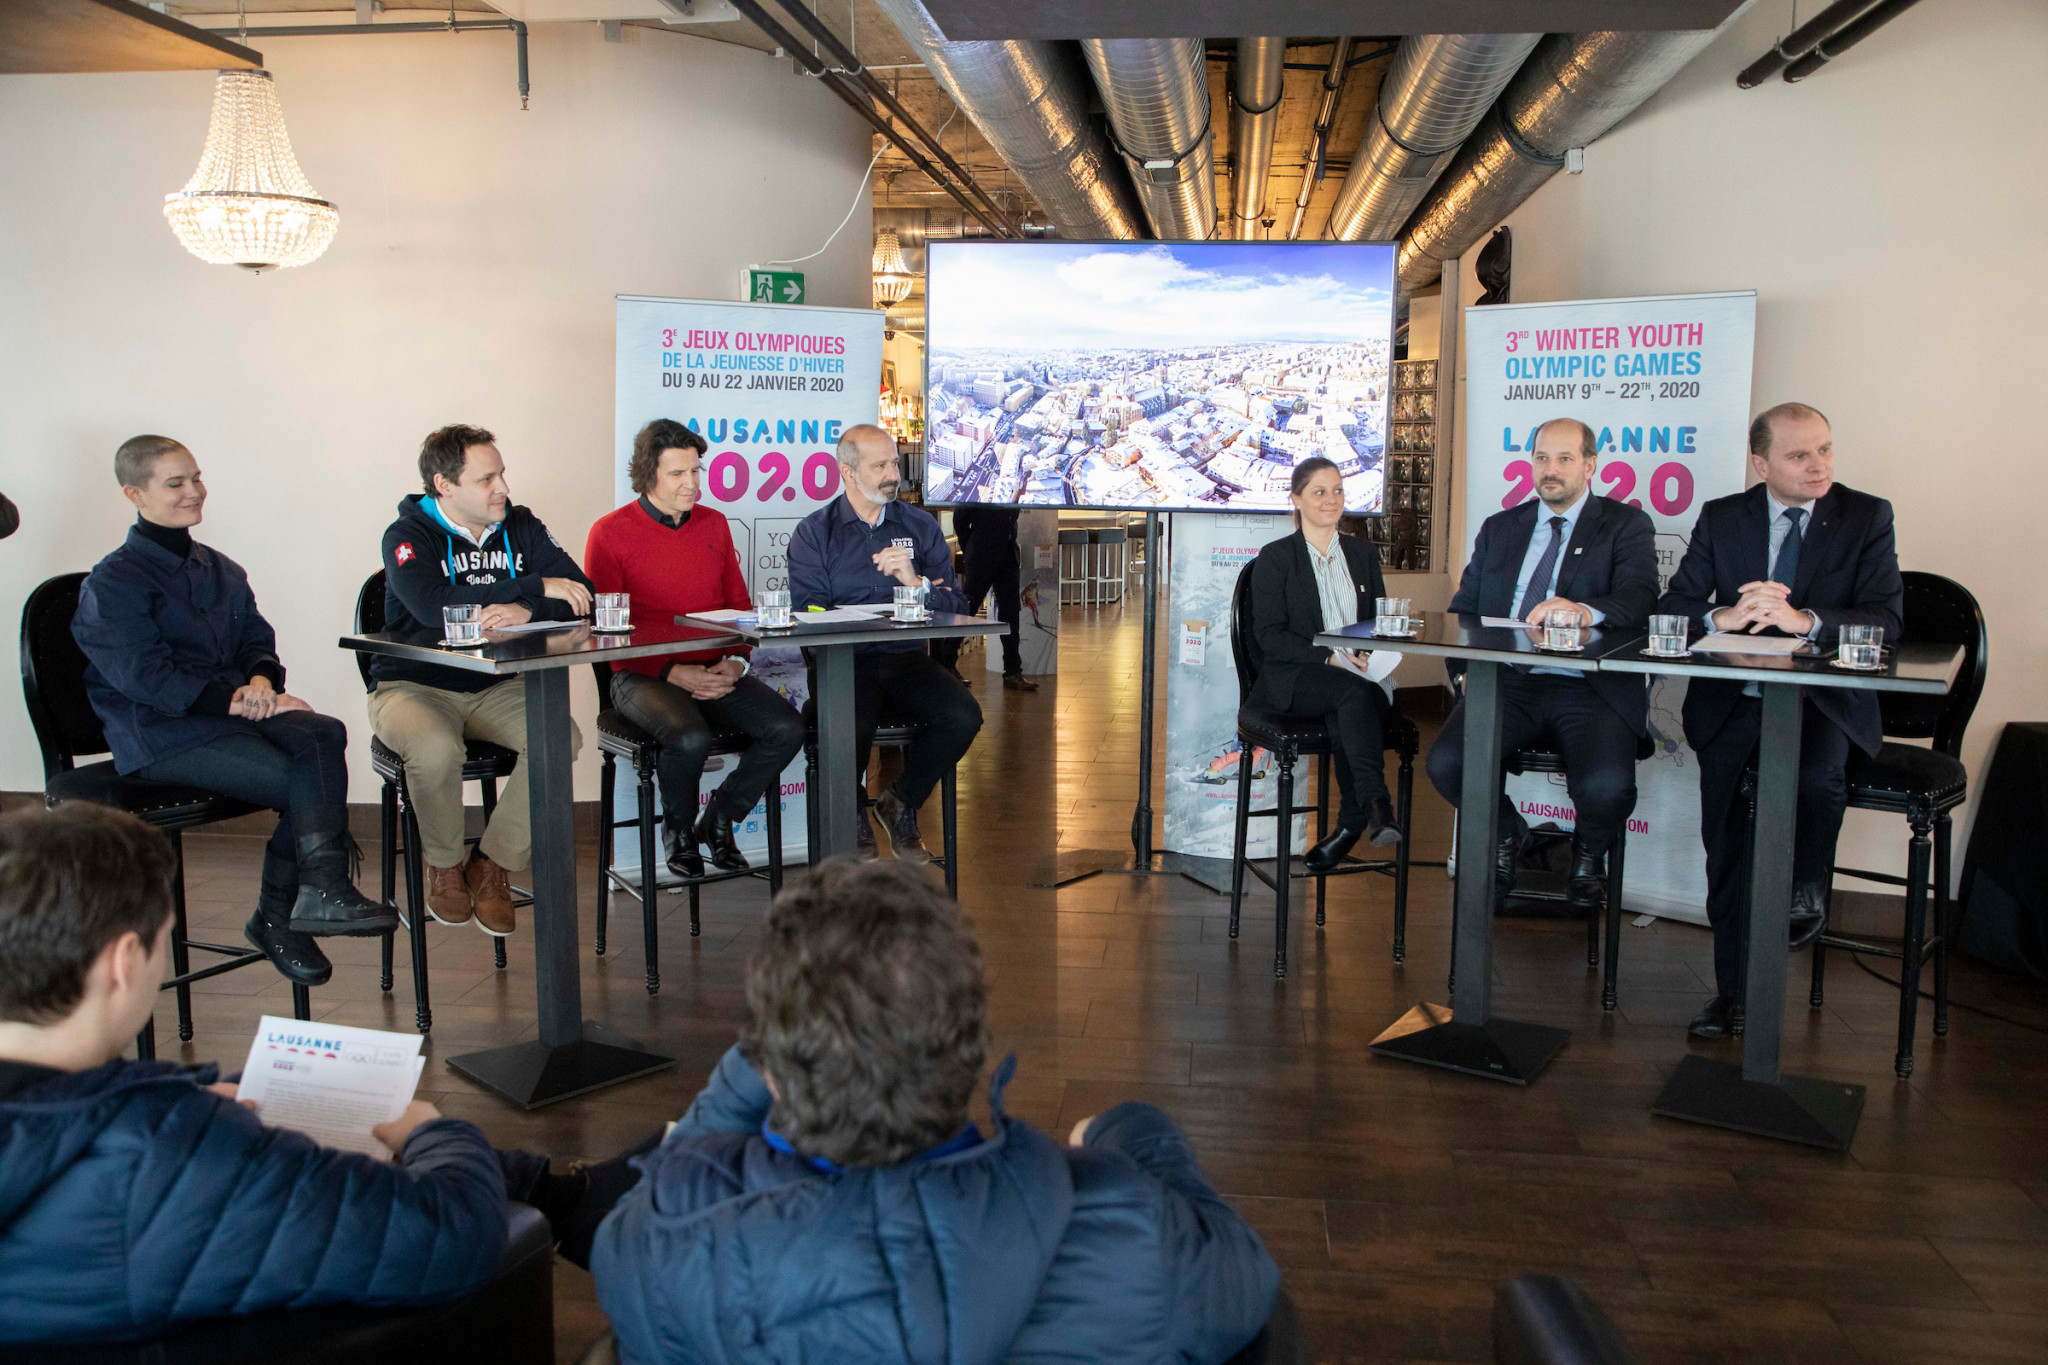 Lausanne 2020 to offer free access to sports events at Winter Youth Olympic Games